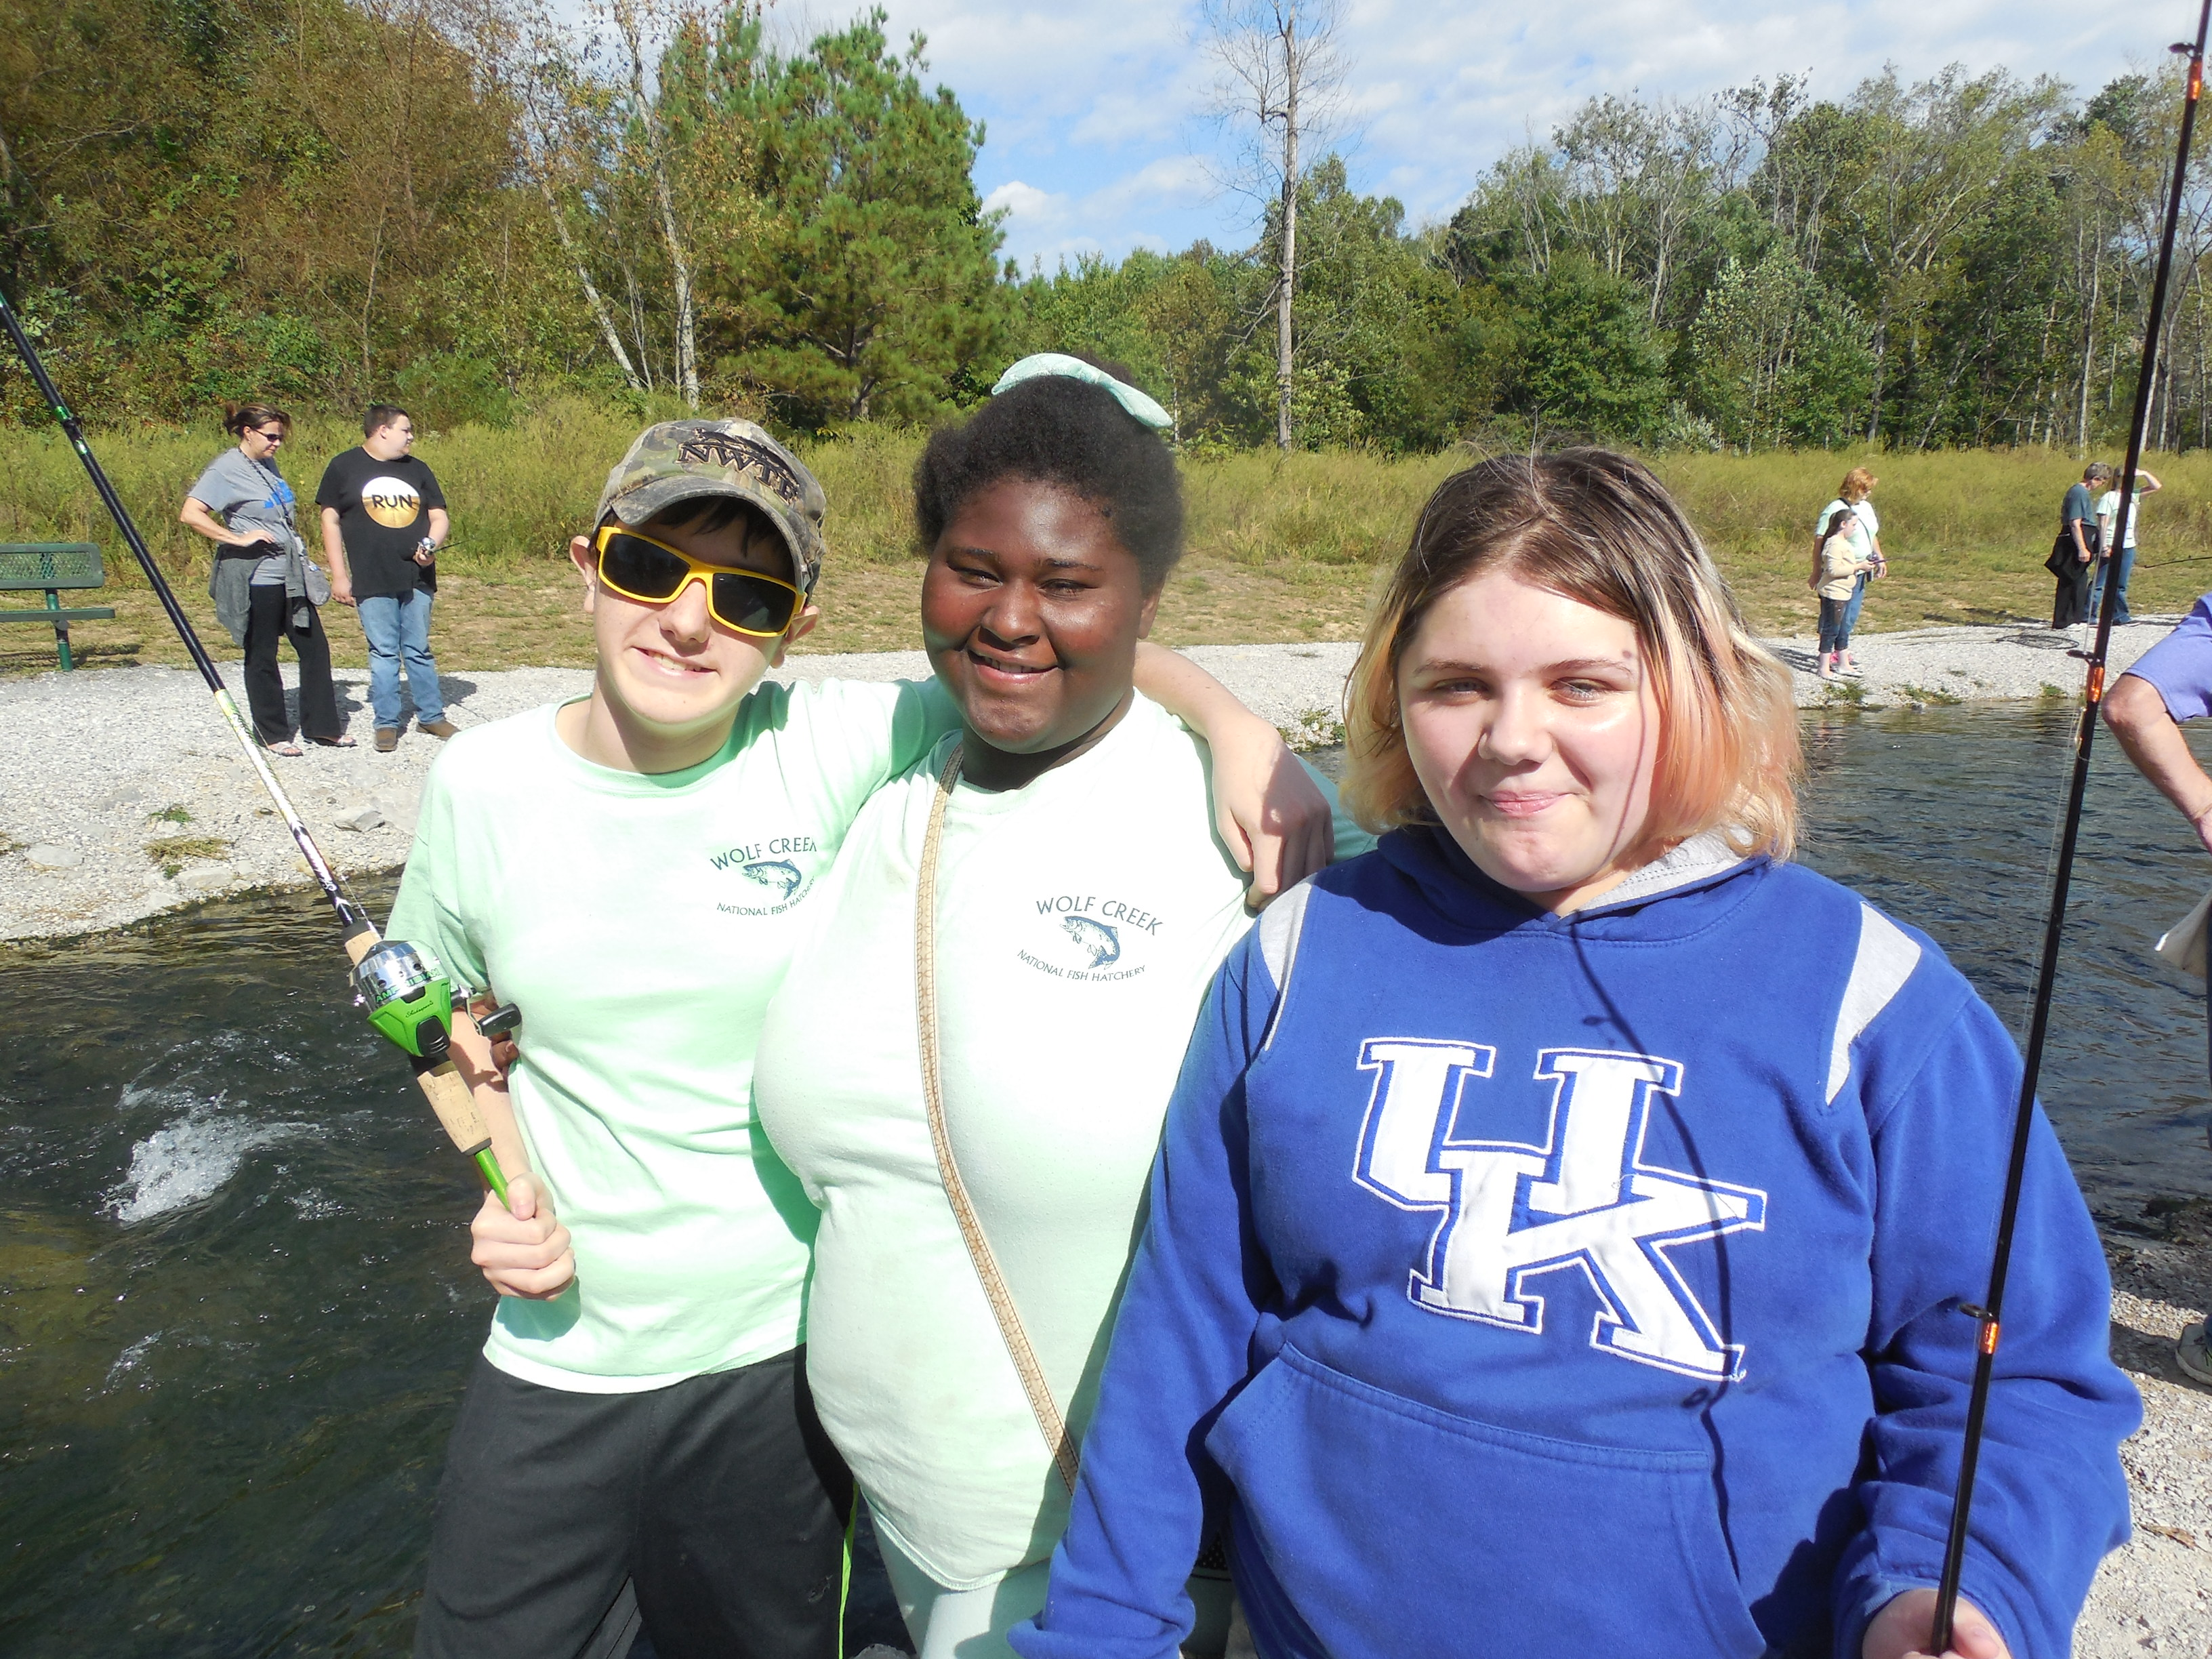 The 9th Annual Reaching for Rainbows Fishing Derby for students in Clinton and Russell Counties was held on Wednesday, September 28th at Wolf Creek National Fish Hatchery.